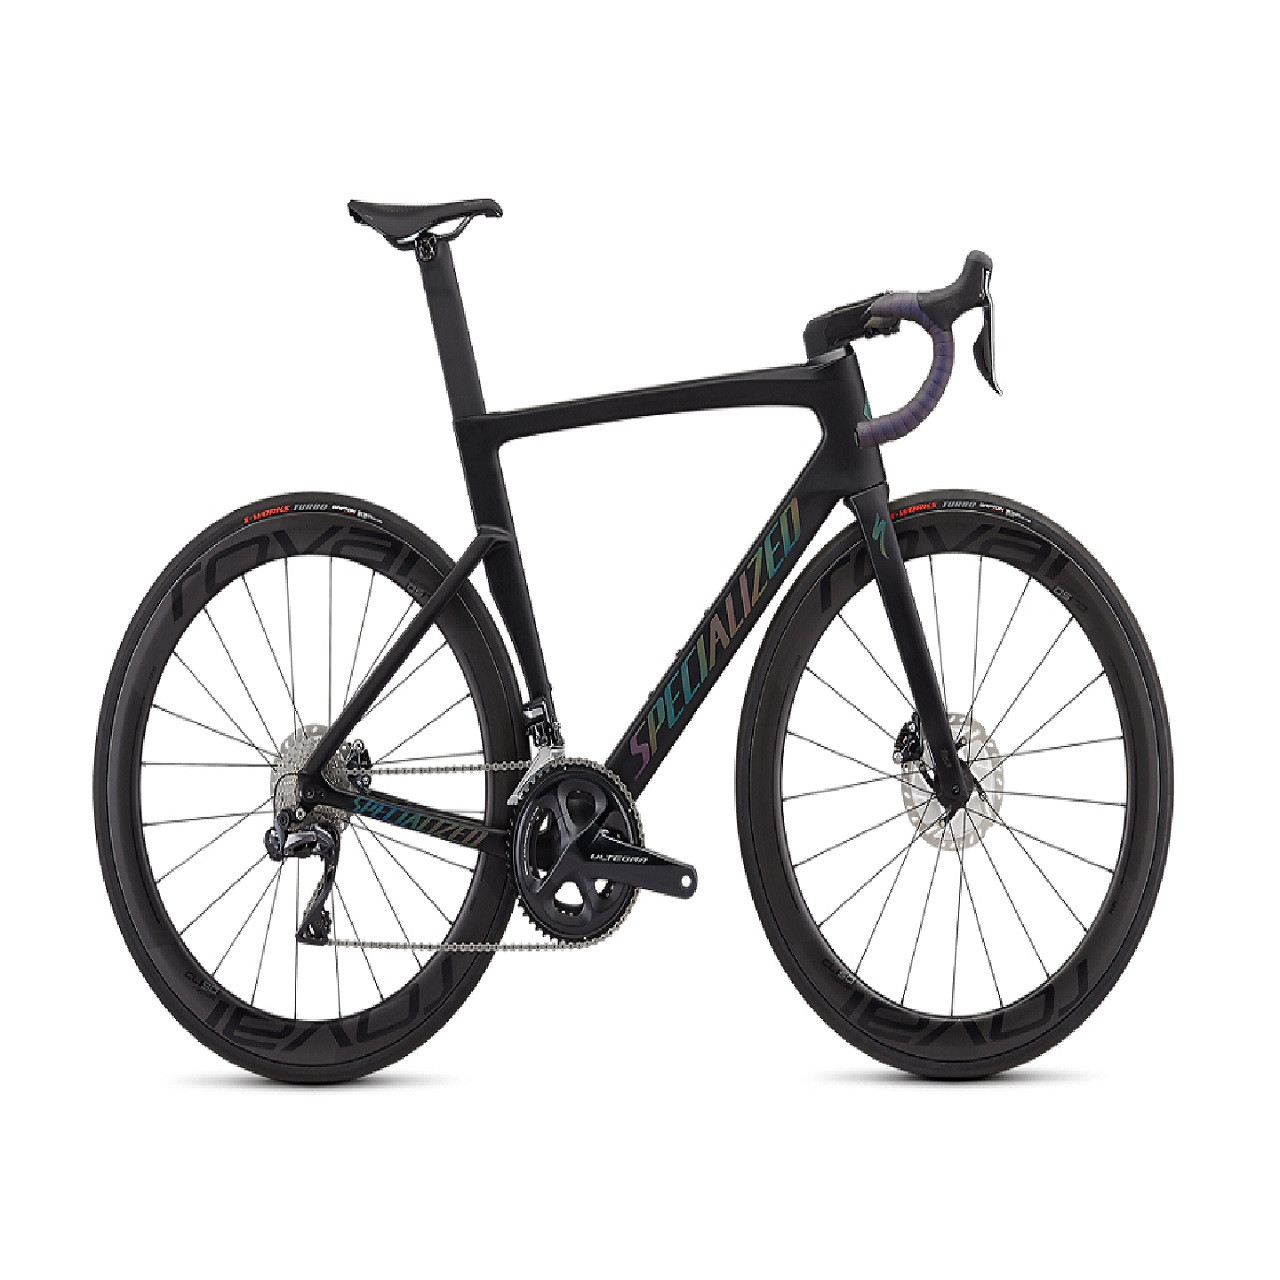 Specialized Venge Pro 2019 Ultegra Di2 11 Speed Satin Black 56cm